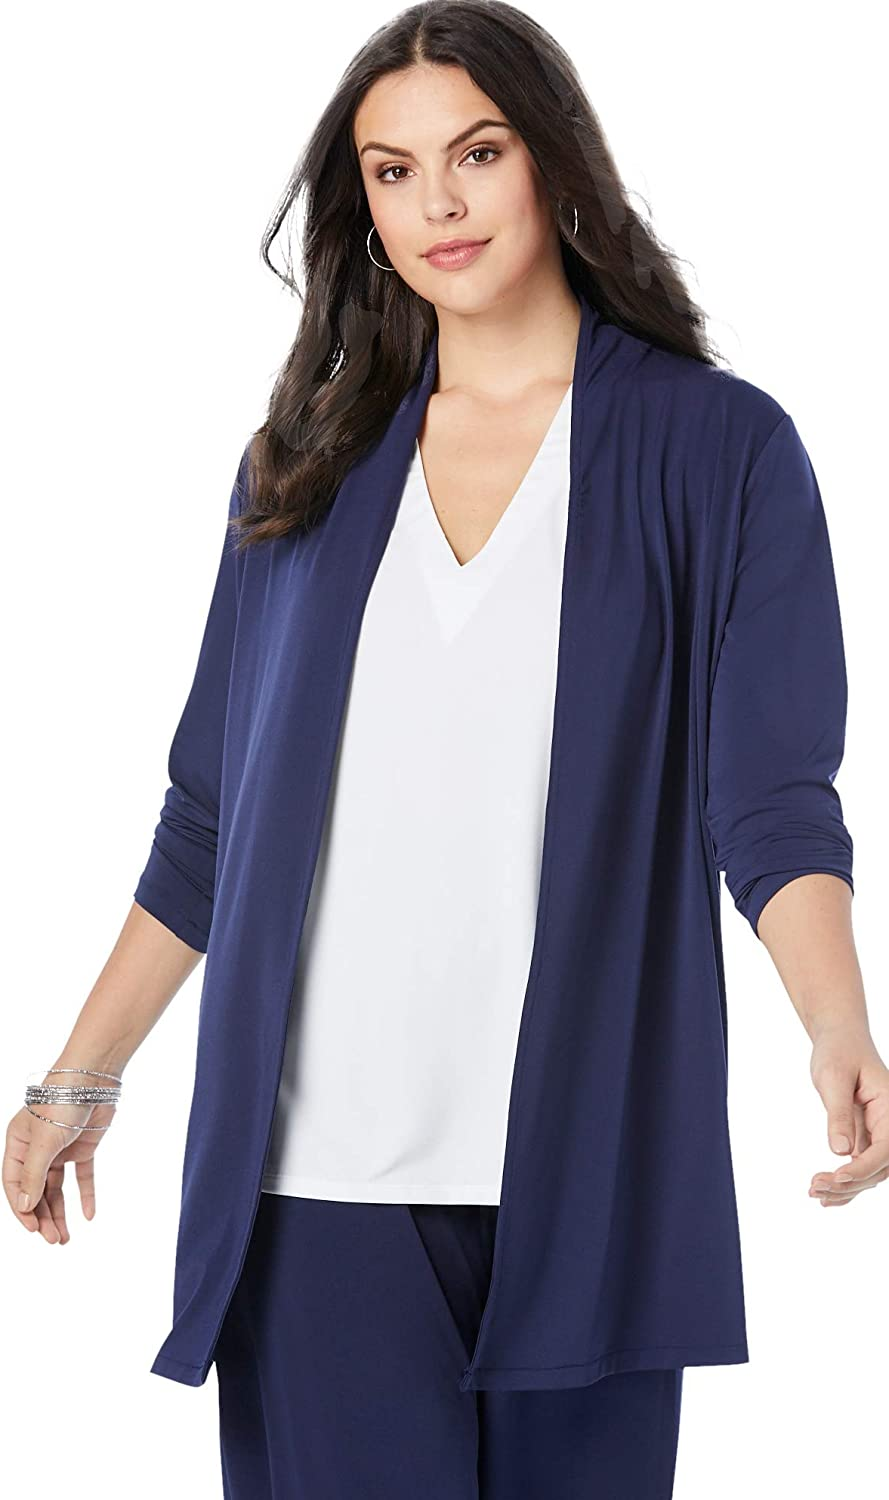 Roamans Women's Plus Size Ultrasmooth Fabric Long-Sleeve Cardigan Stretch Jersey Topper